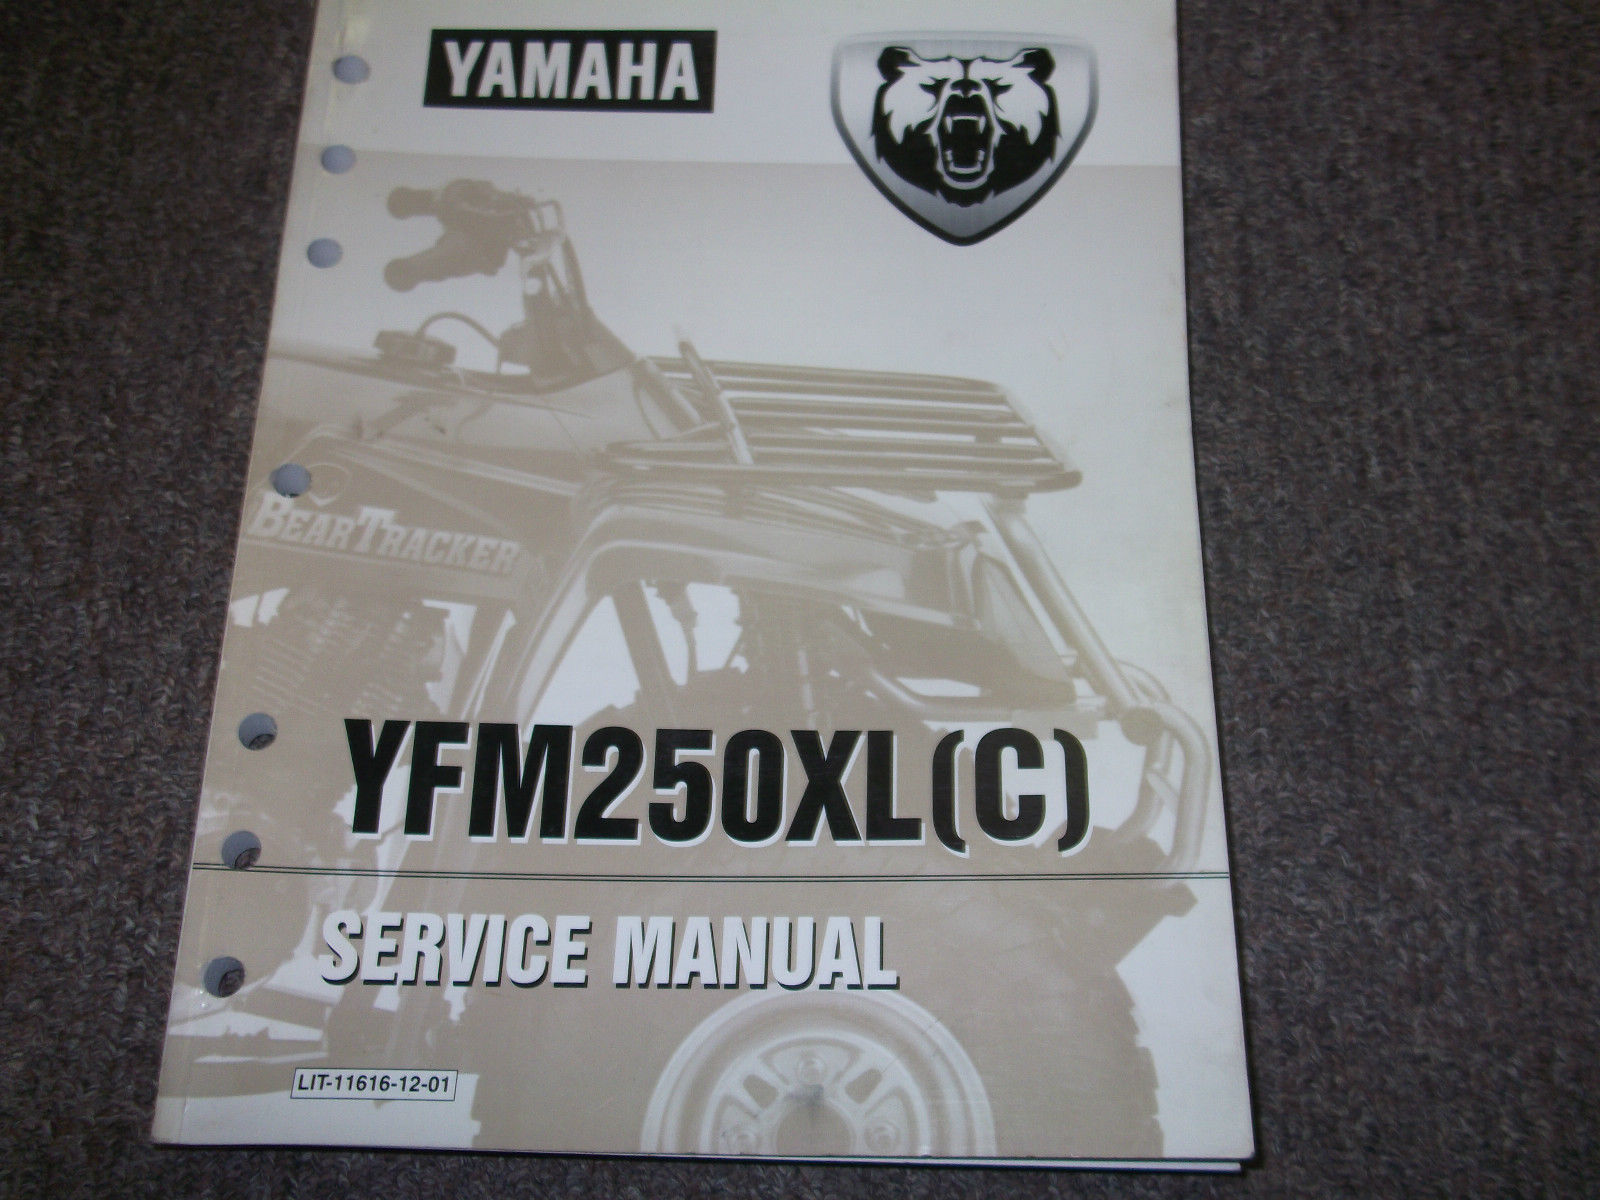 1998 1999 Yamaha YFM250XL YFM 250 XL C ATV Shop Service Repair Manual  FACTORY x - $69.29